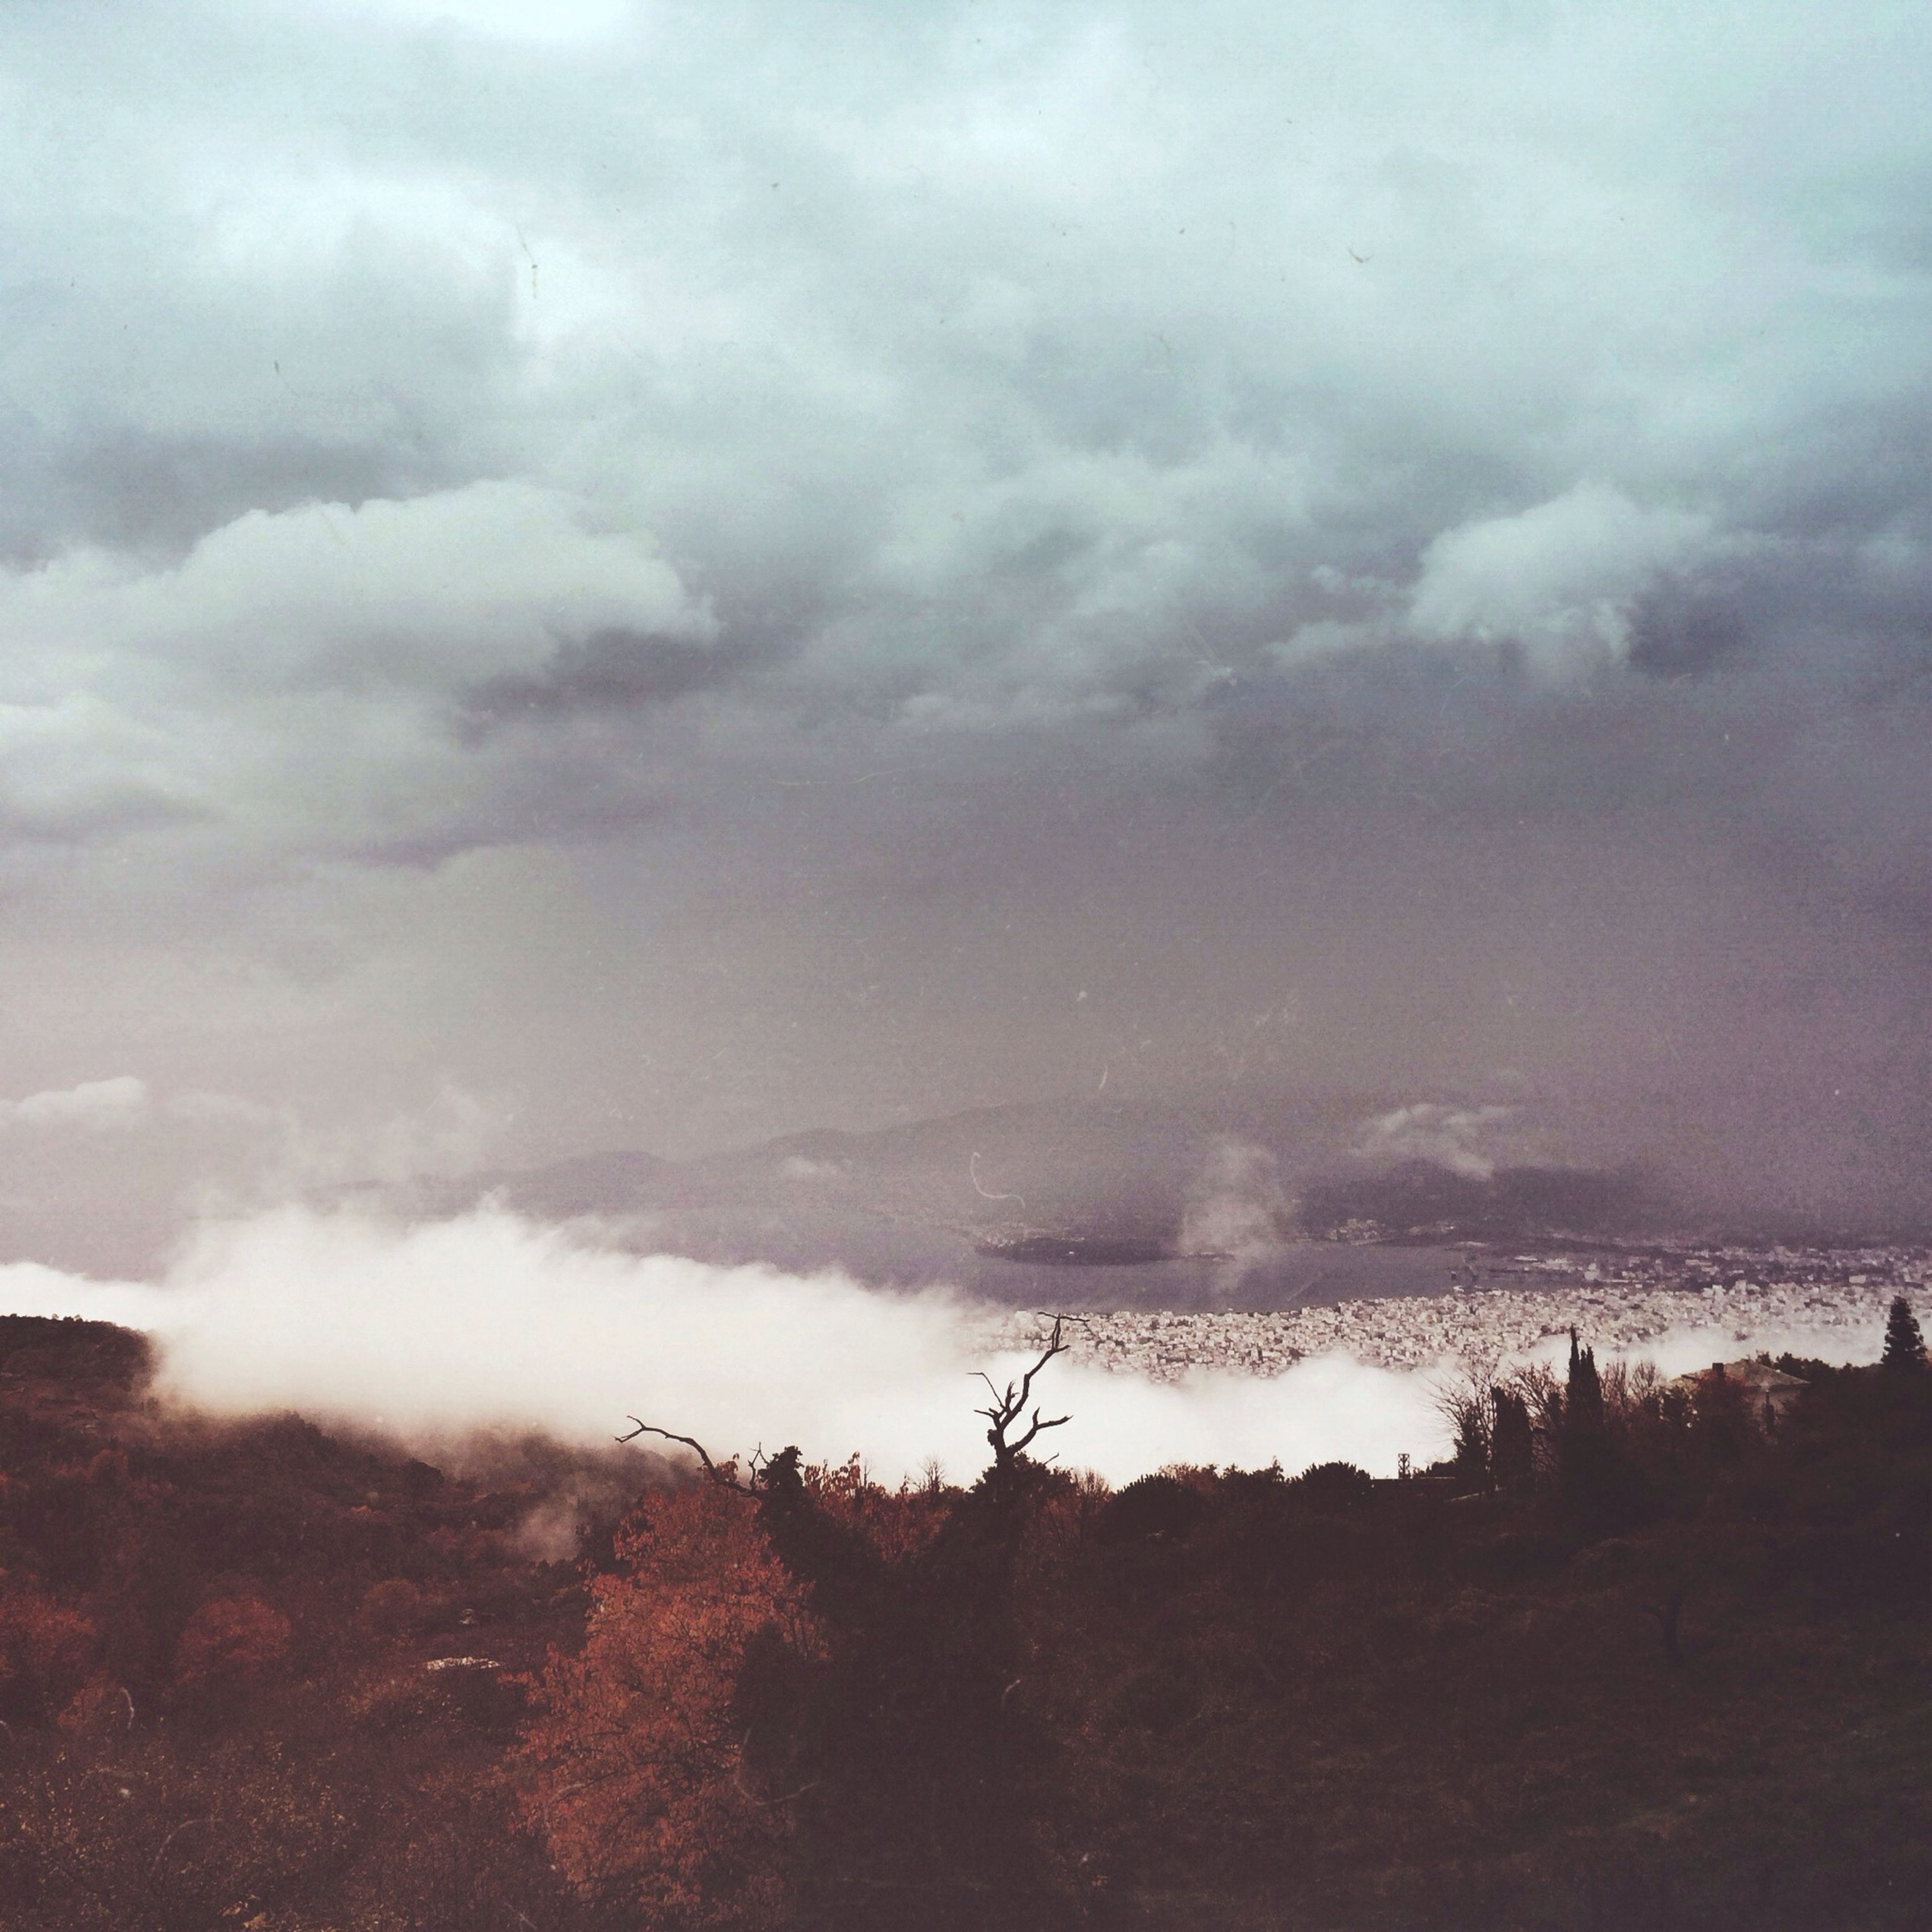 sky, cloud - sky, cloudy, weather, landscape, overcast, scenics, nature, tranquility, tranquil scene, field, beauty in nature, storm cloud, dusk, cloud, outdoors, power in nature, day, idyllic, no people